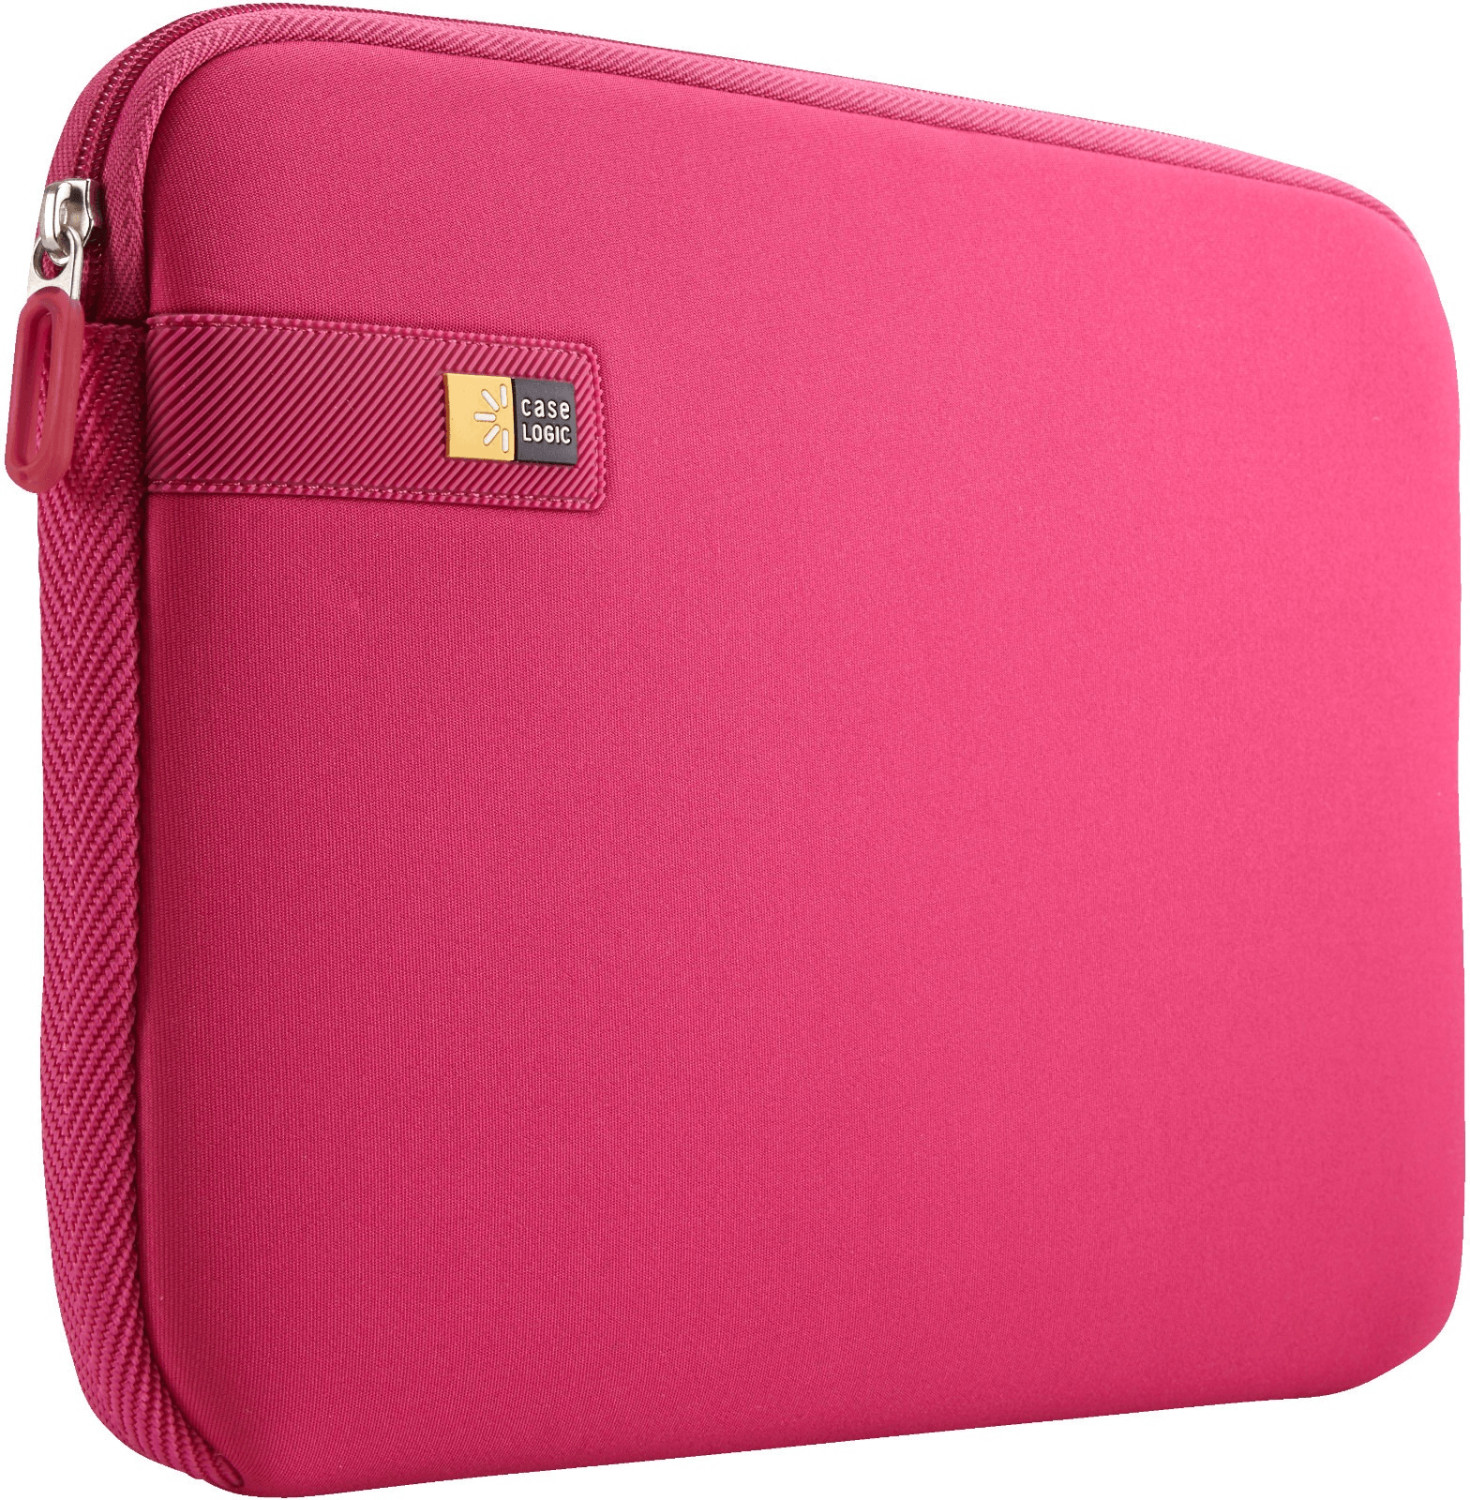 "Image of Case Logic Netbook Case 11,6"" pink (LAPS111)"